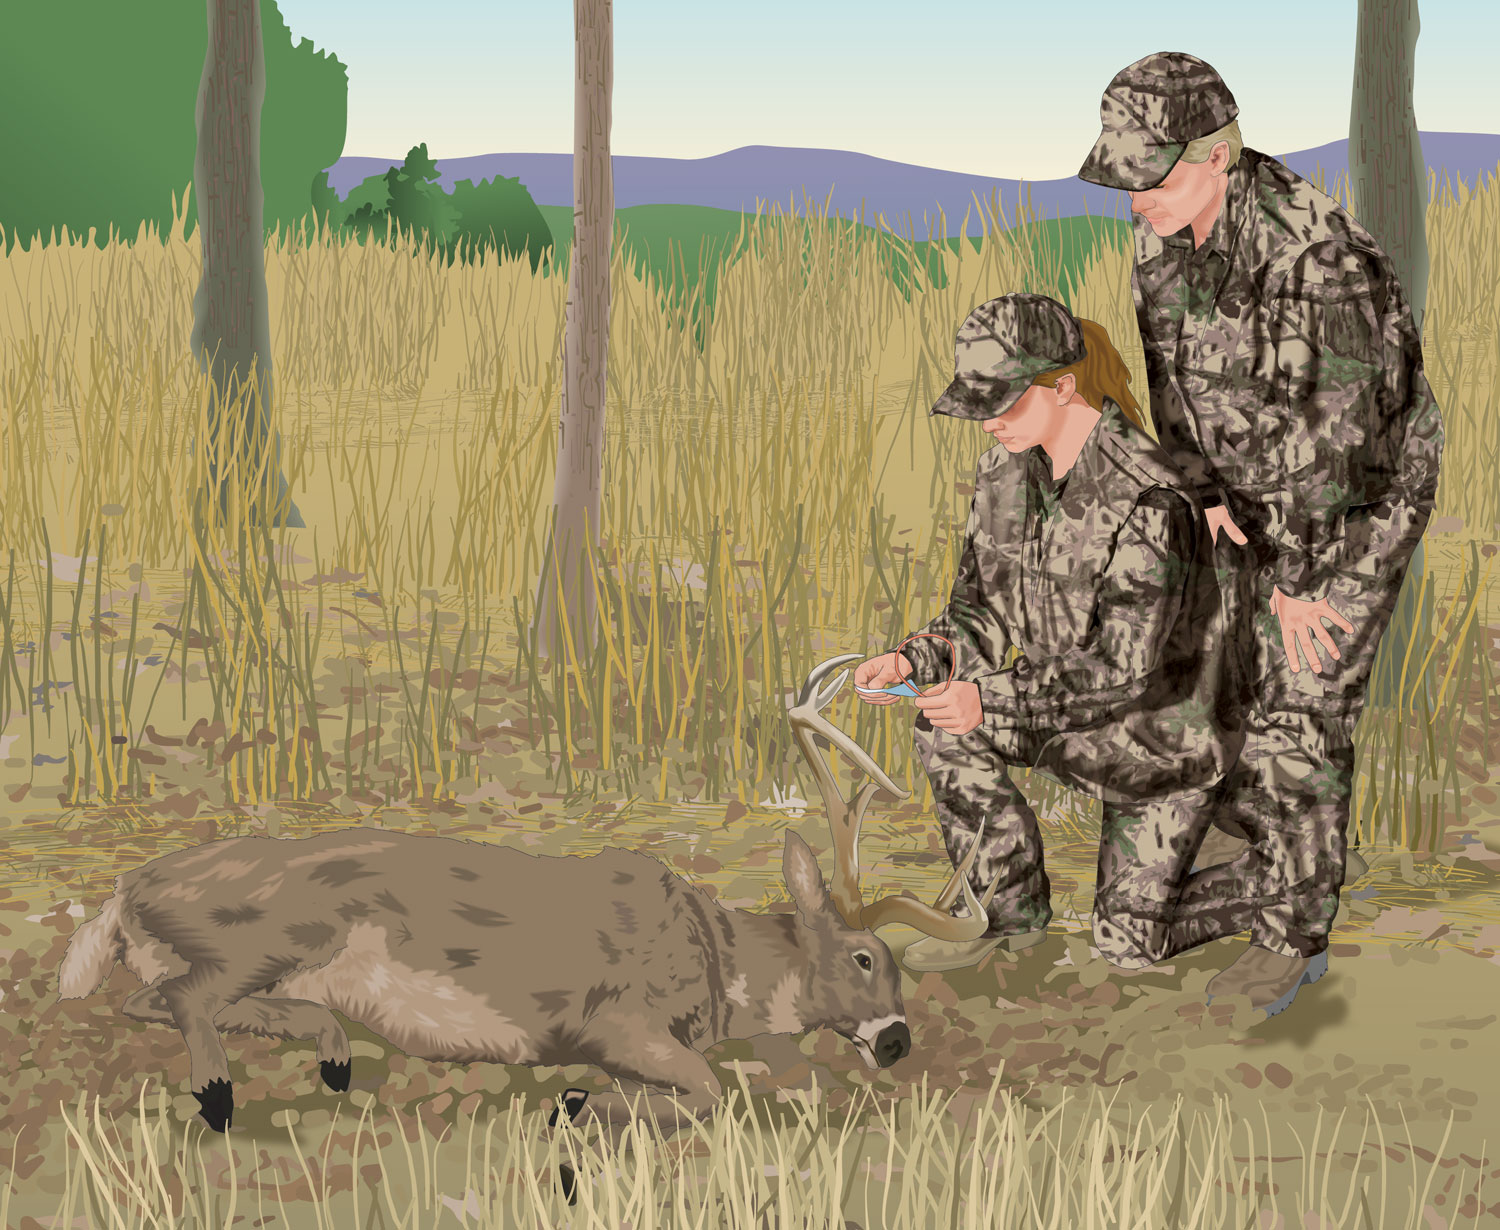 Two hunters investigating a downed deer